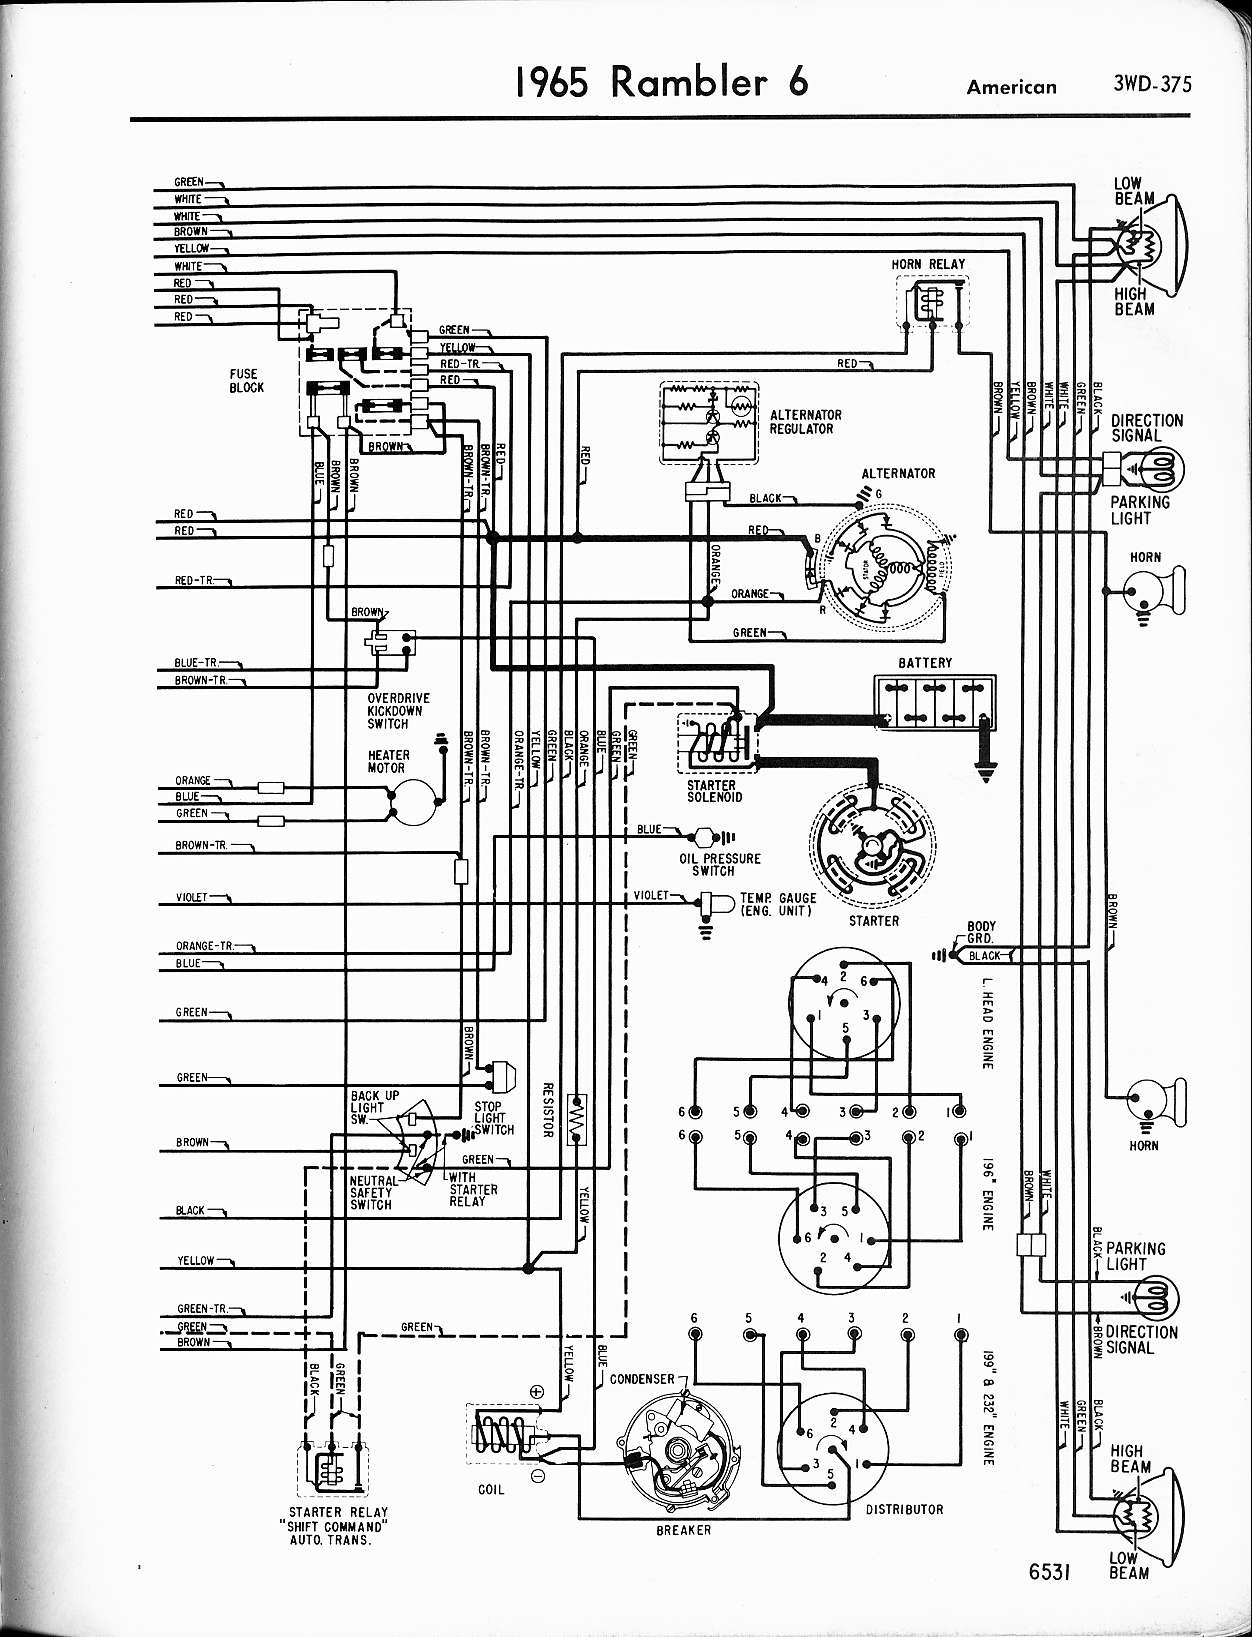 1967 rambler rebel wiring diagram wiring data u2022 rh maxi mail co 1971 AMC Rebel 1970 AMC Rebel